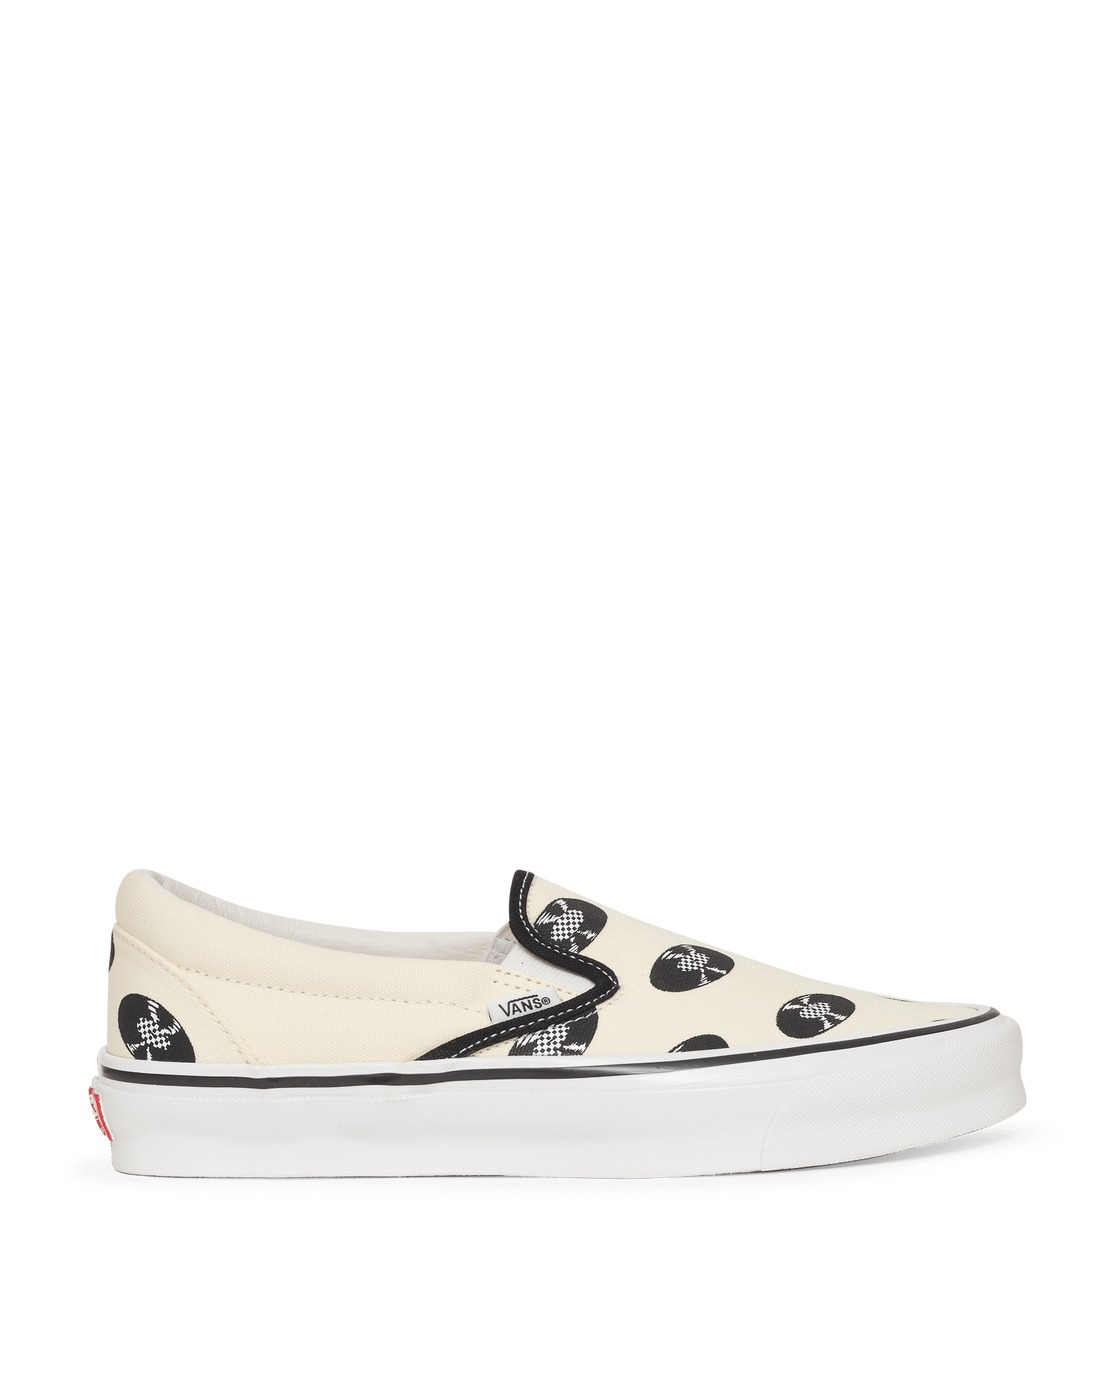 Photo: Vans Wacko Maria Og Classic Slip On Sneakers Clscwhtrcords